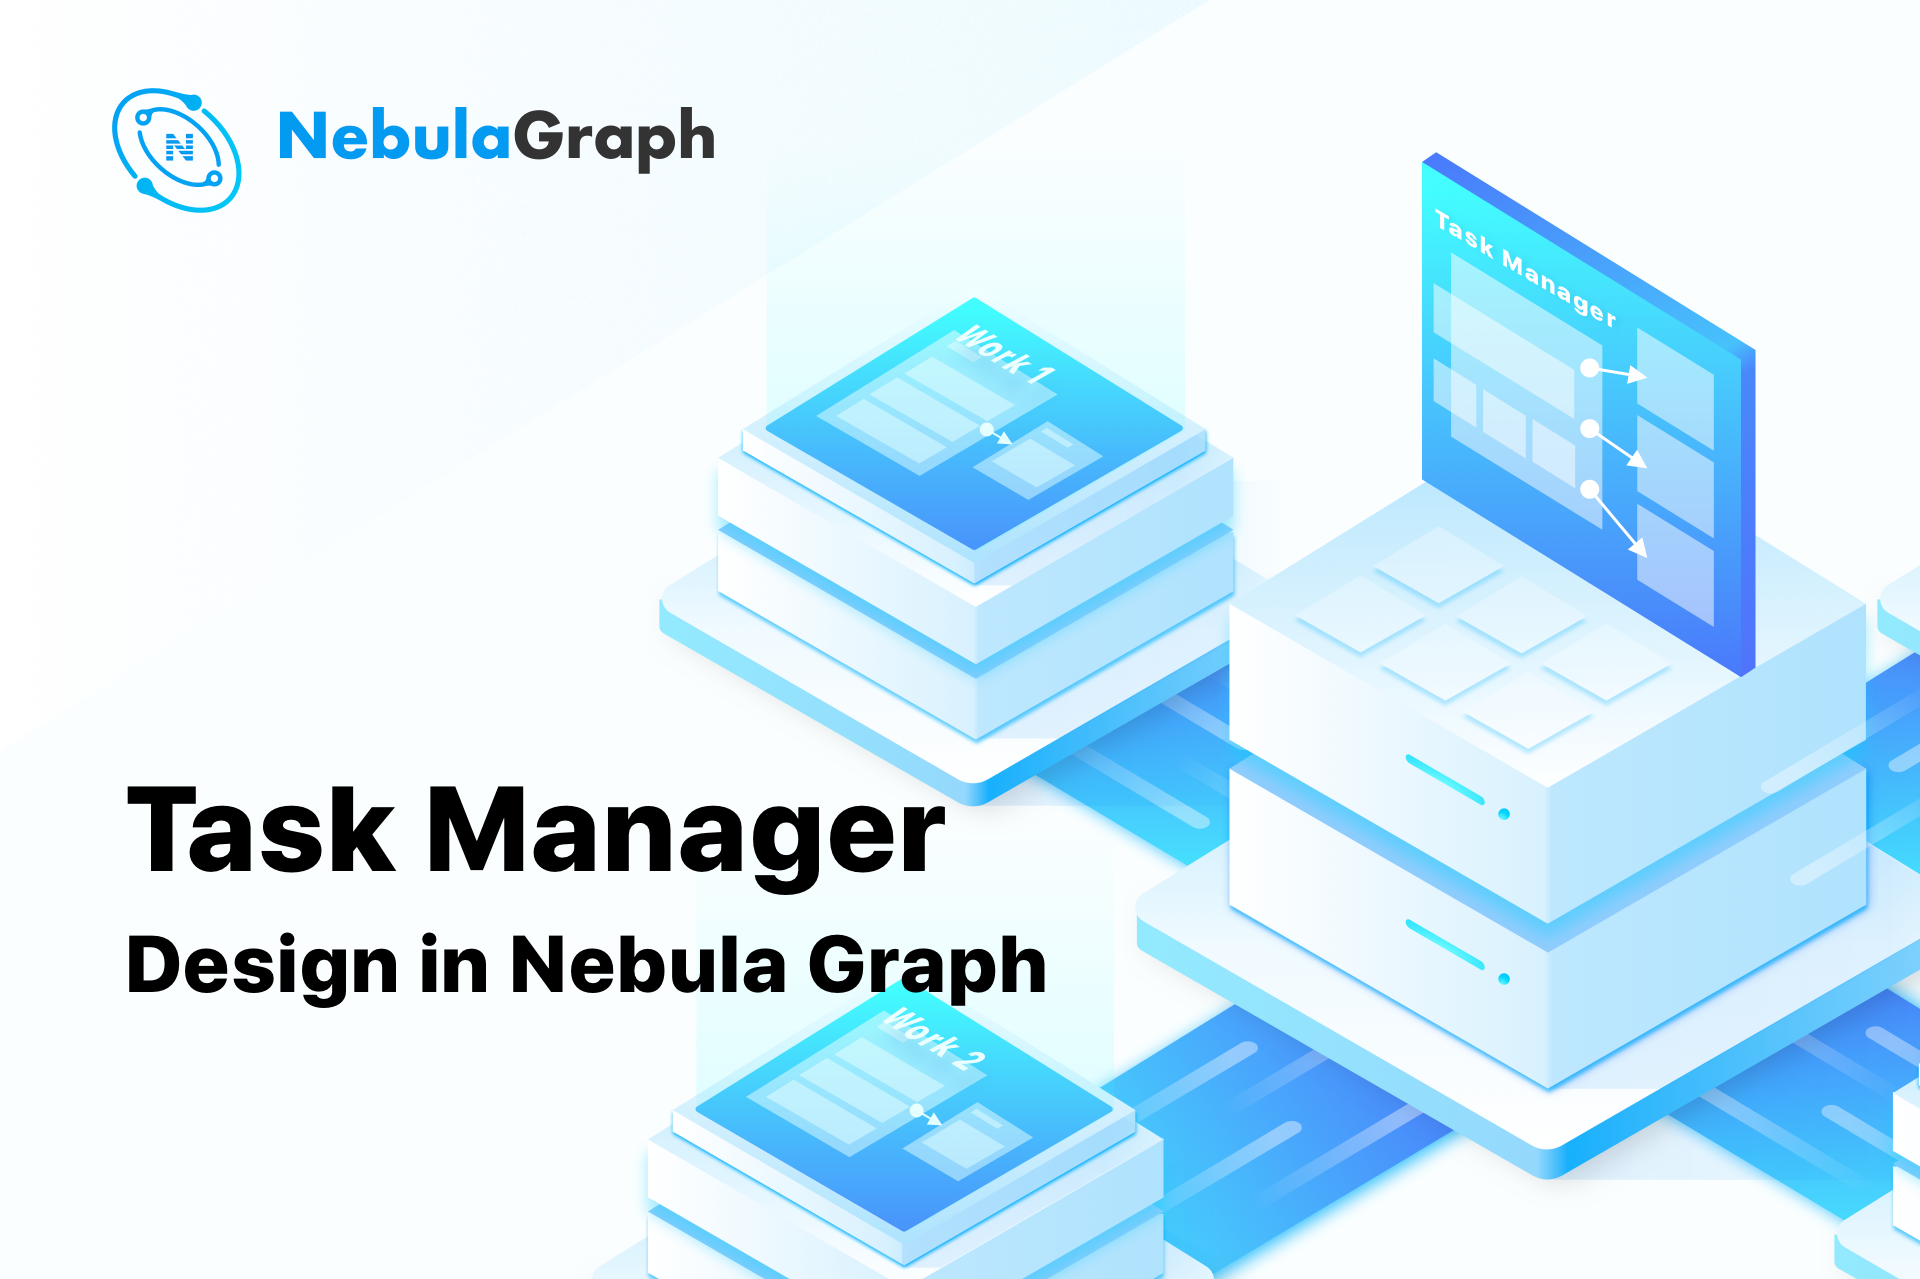 Task Manager Design in Nebula Graph